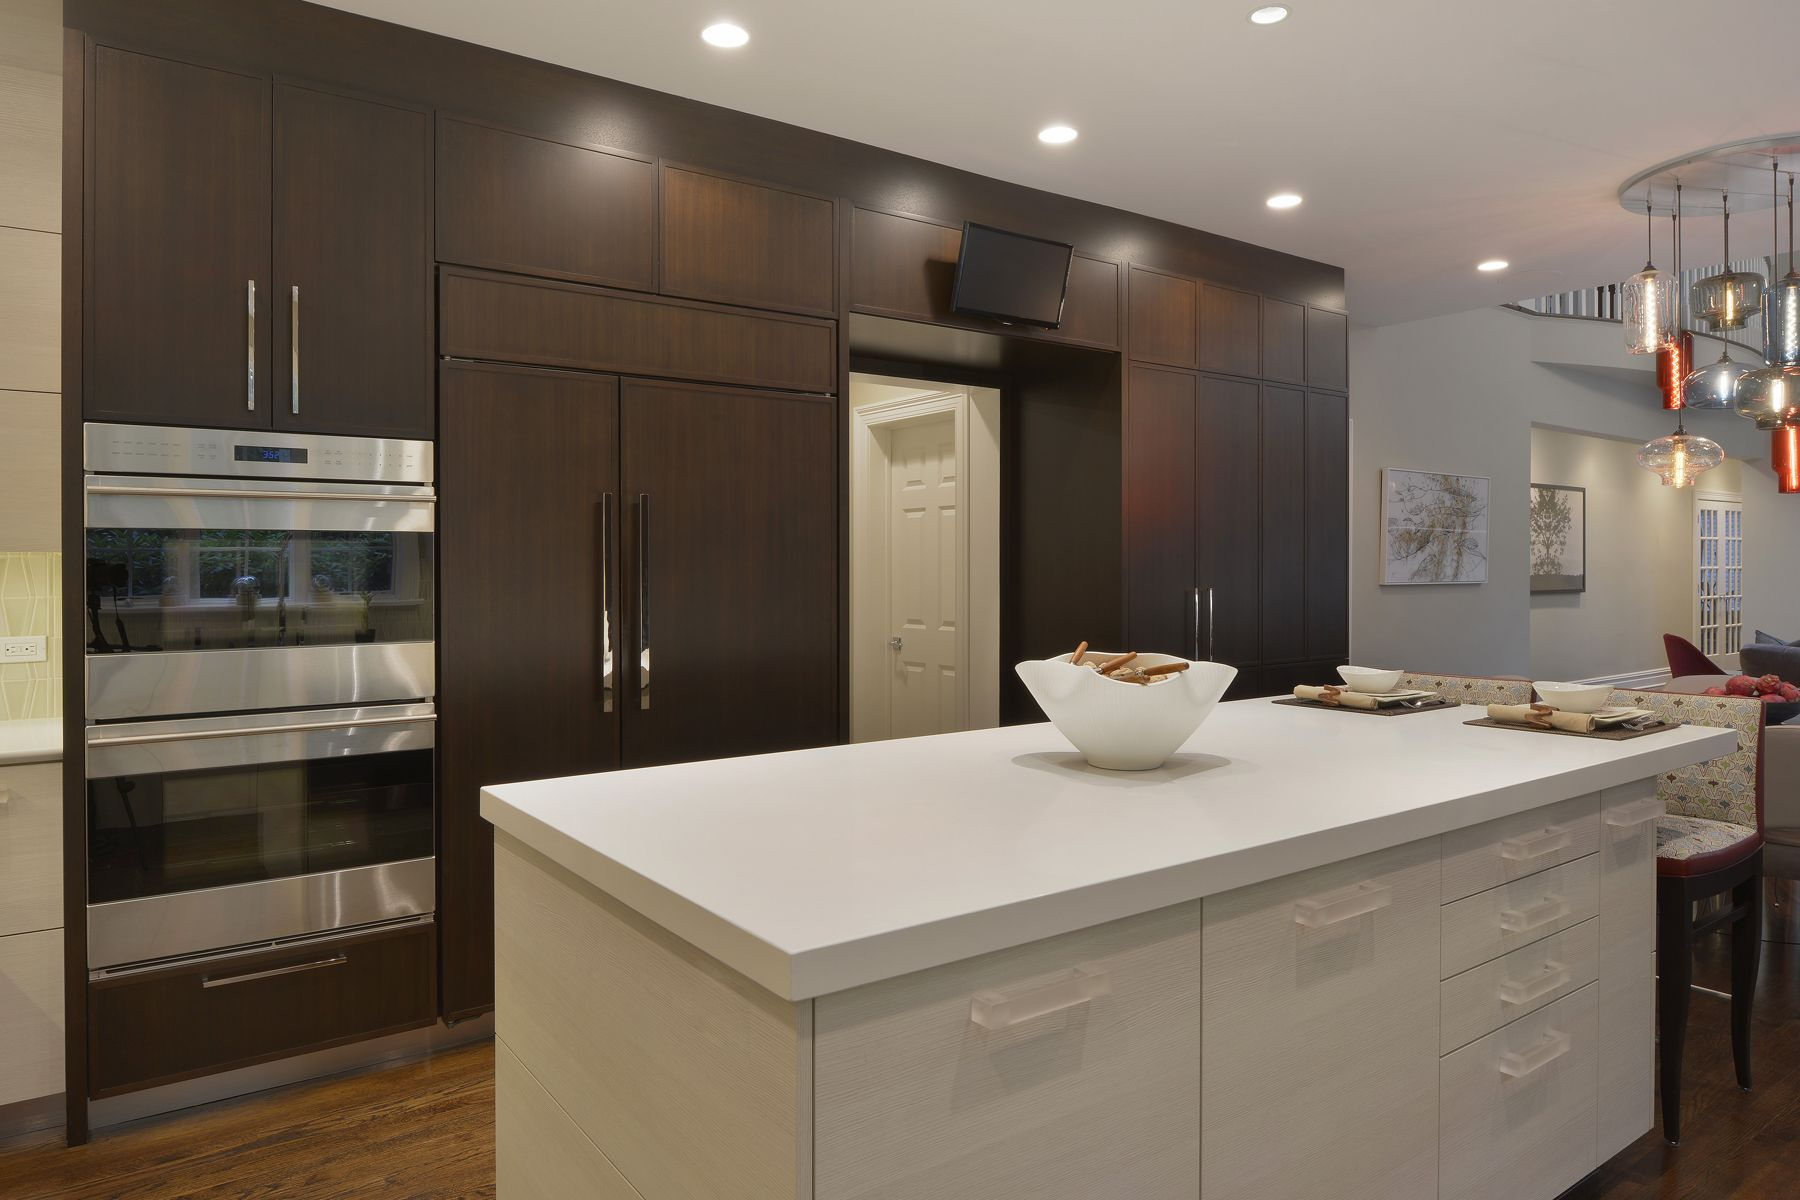 U Shaped Kitchen Features A Mix Of Flat Panel White Textured Laminate And Shaker Style Walnut F Transitional Kitchen Design Transitional Kitchen Kitchen Design